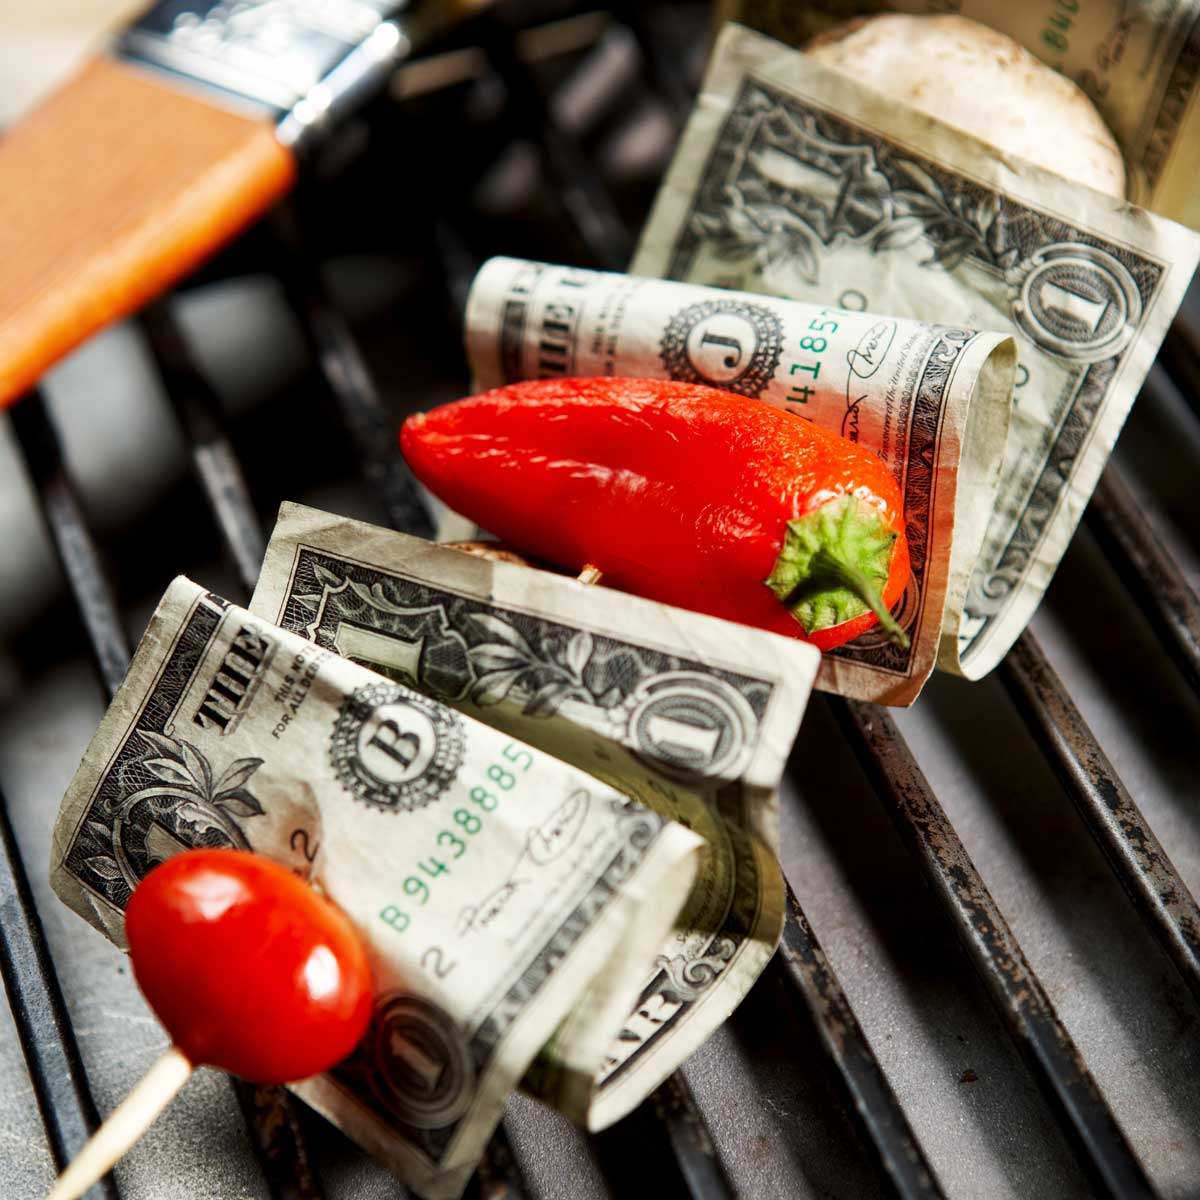 grilling and bbq concept; grilling skewer with tomato, pepper and dollar bills on the stick